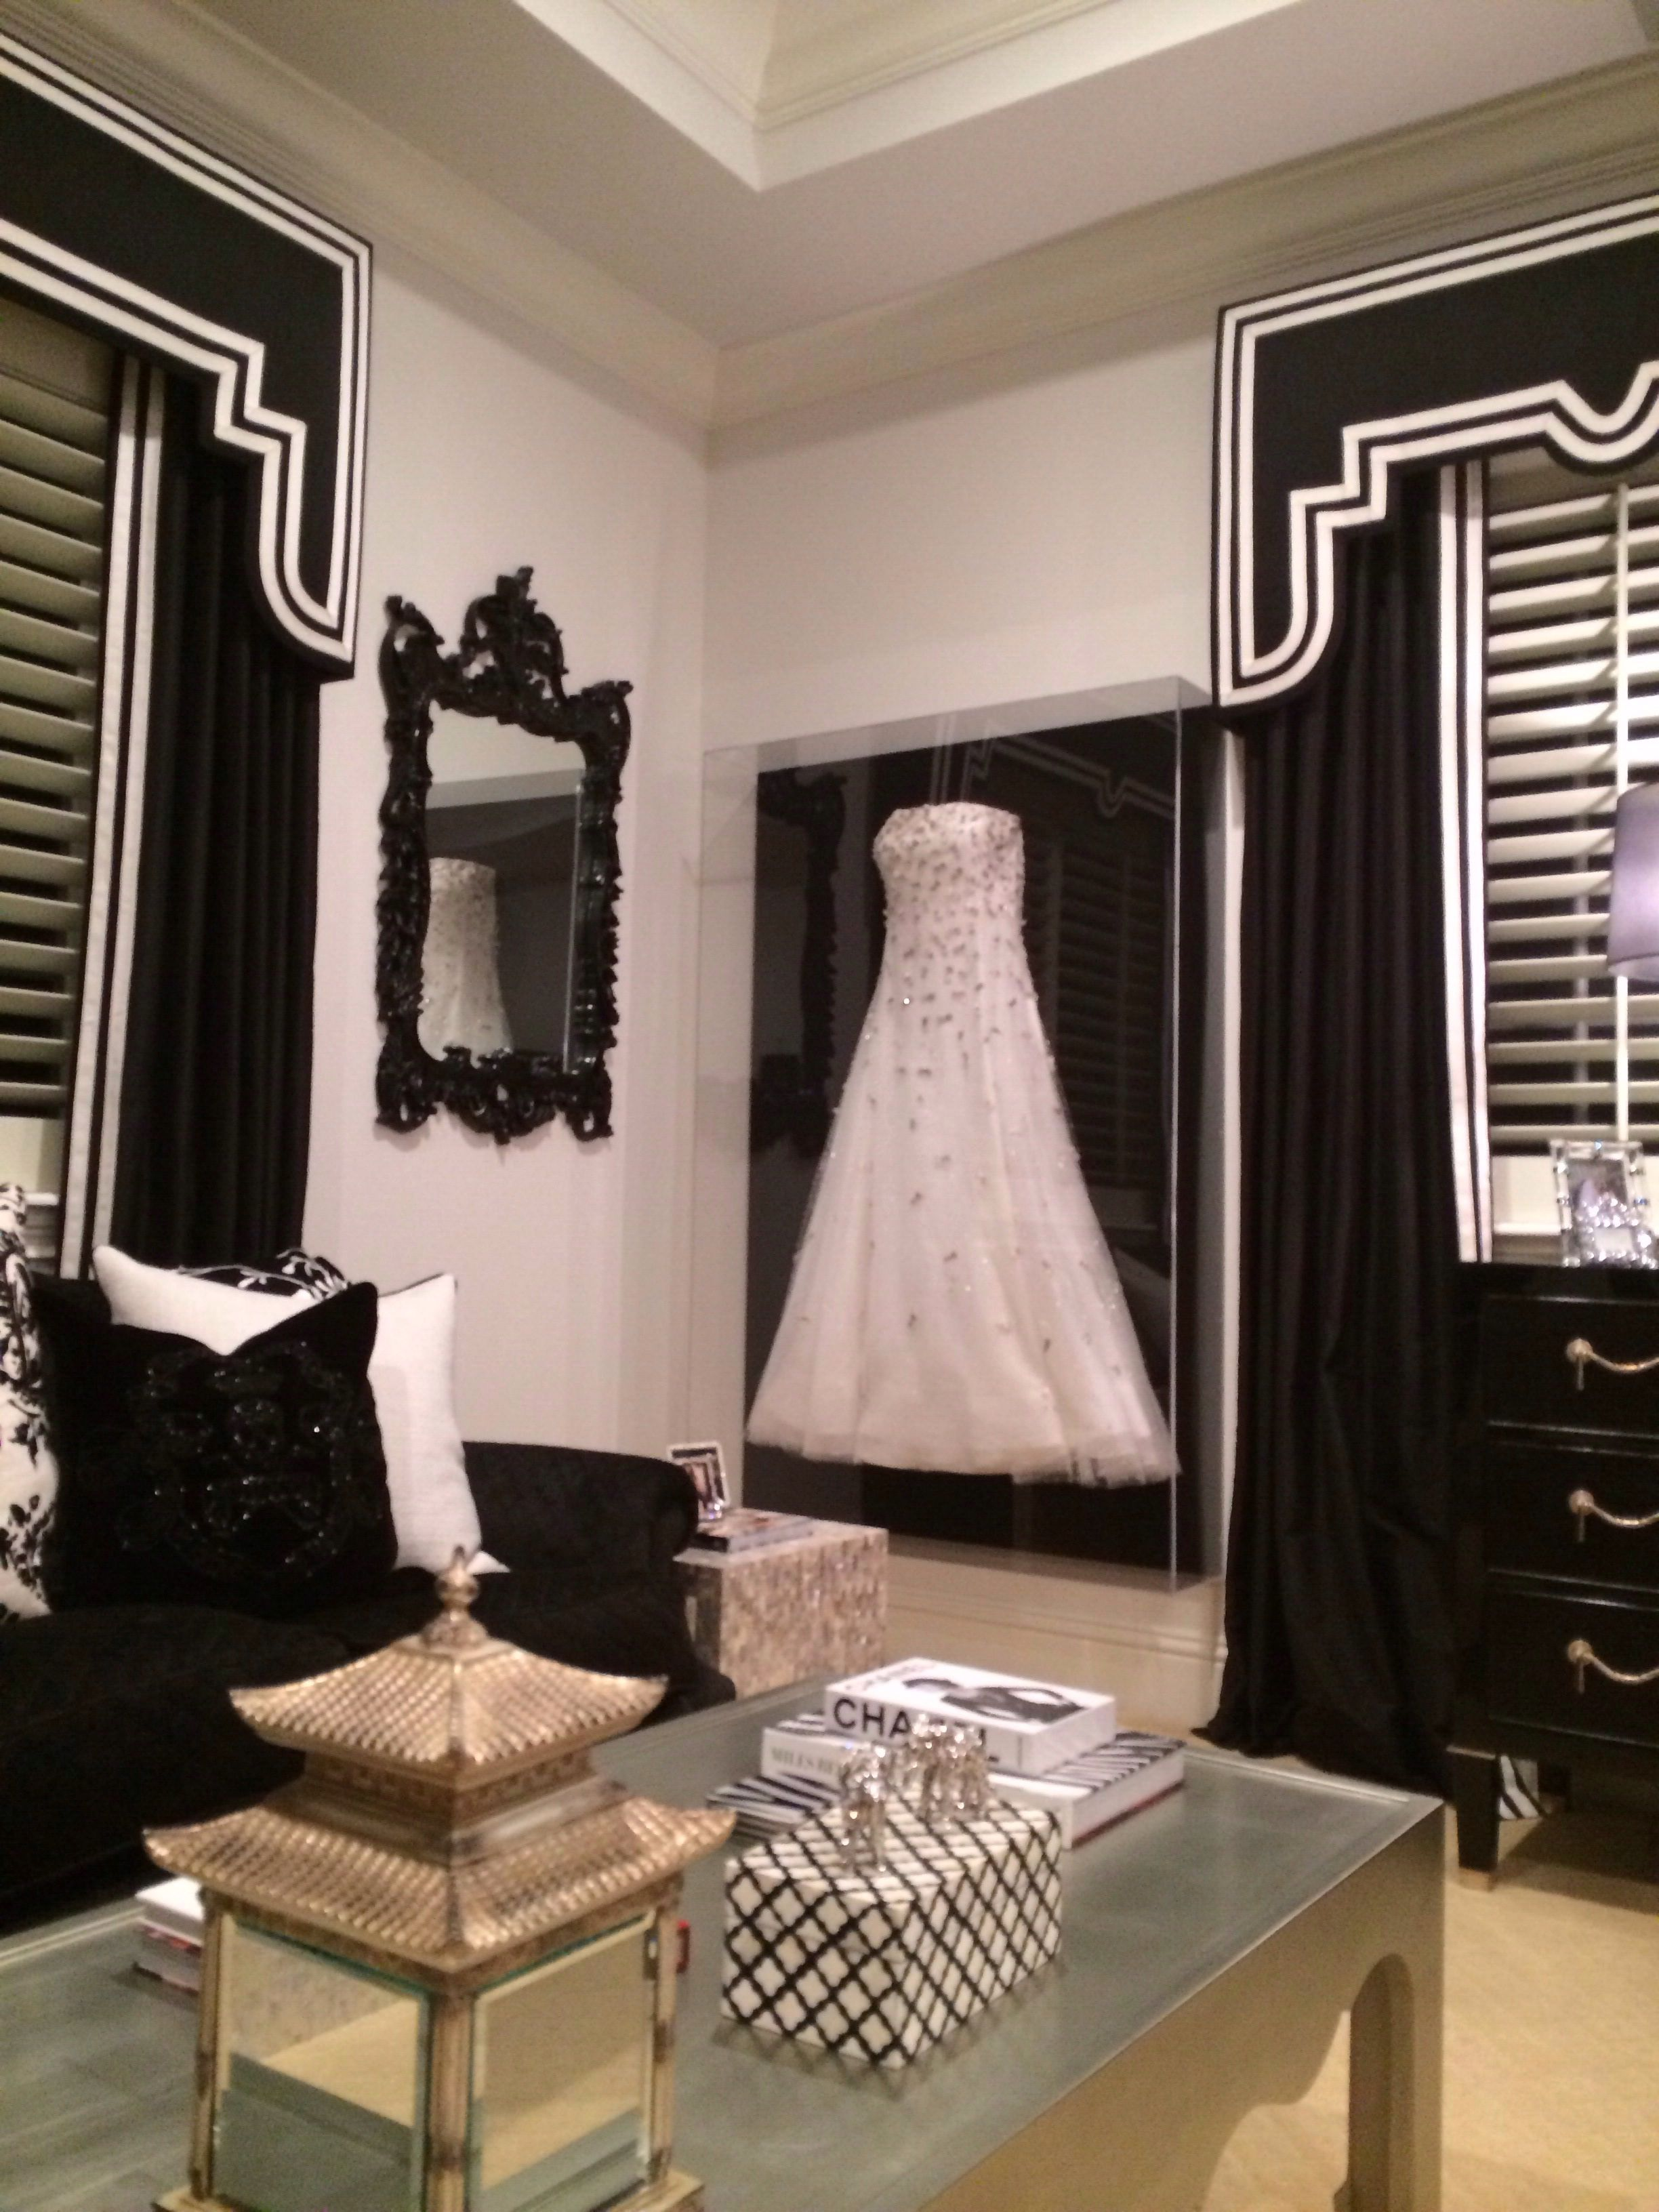 Framed wedding dress in closet...would look great on the